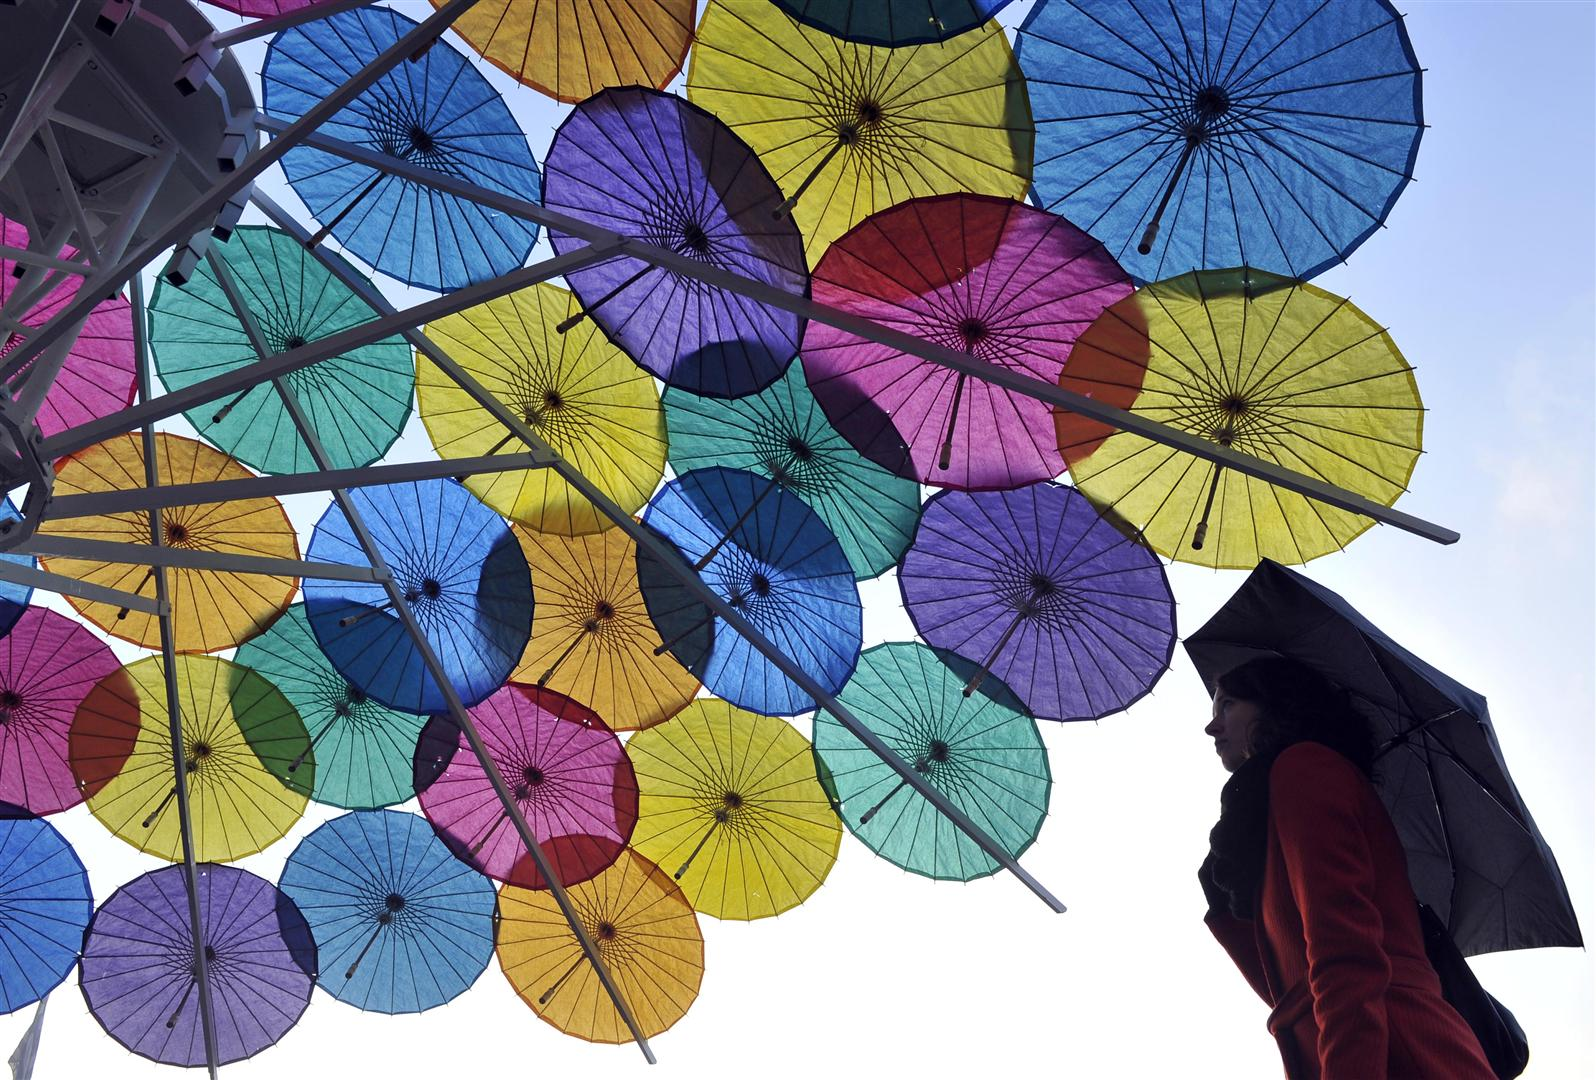 A lady in a red coat holds an umbrella, underneath a giant cocktail umbrella constructed lots of multi-coloured parasols.